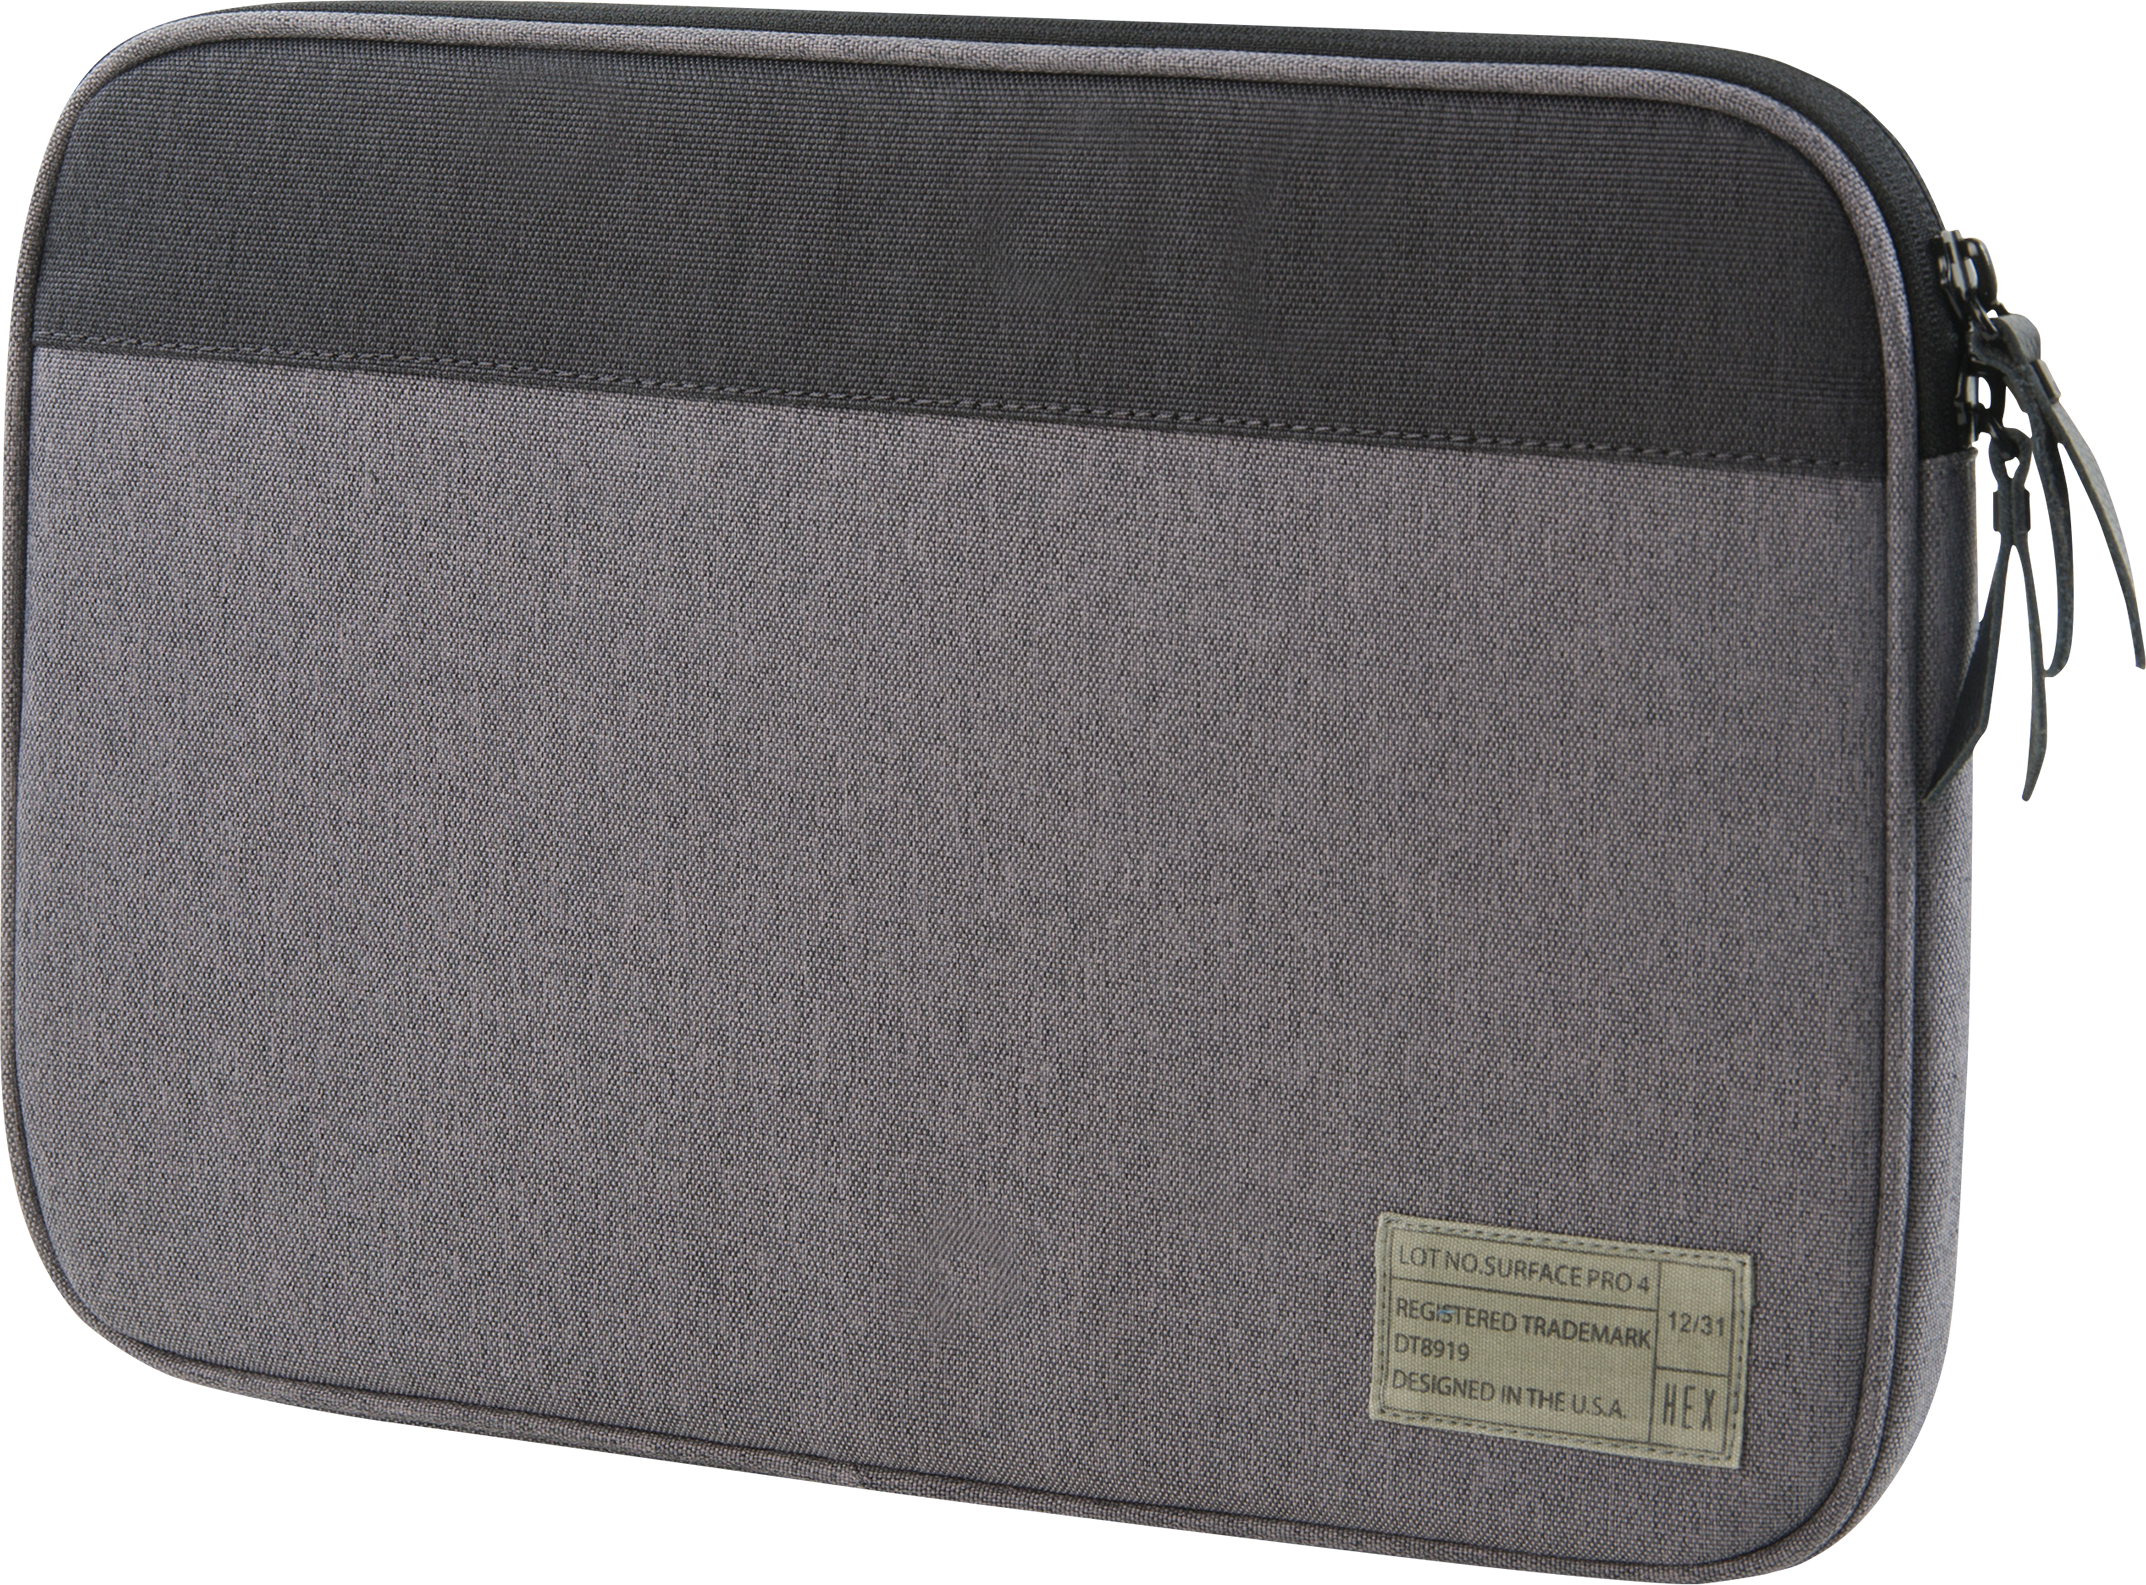 HEX Surface Pro 4 Sleeve with Rear Pocket (Gray)